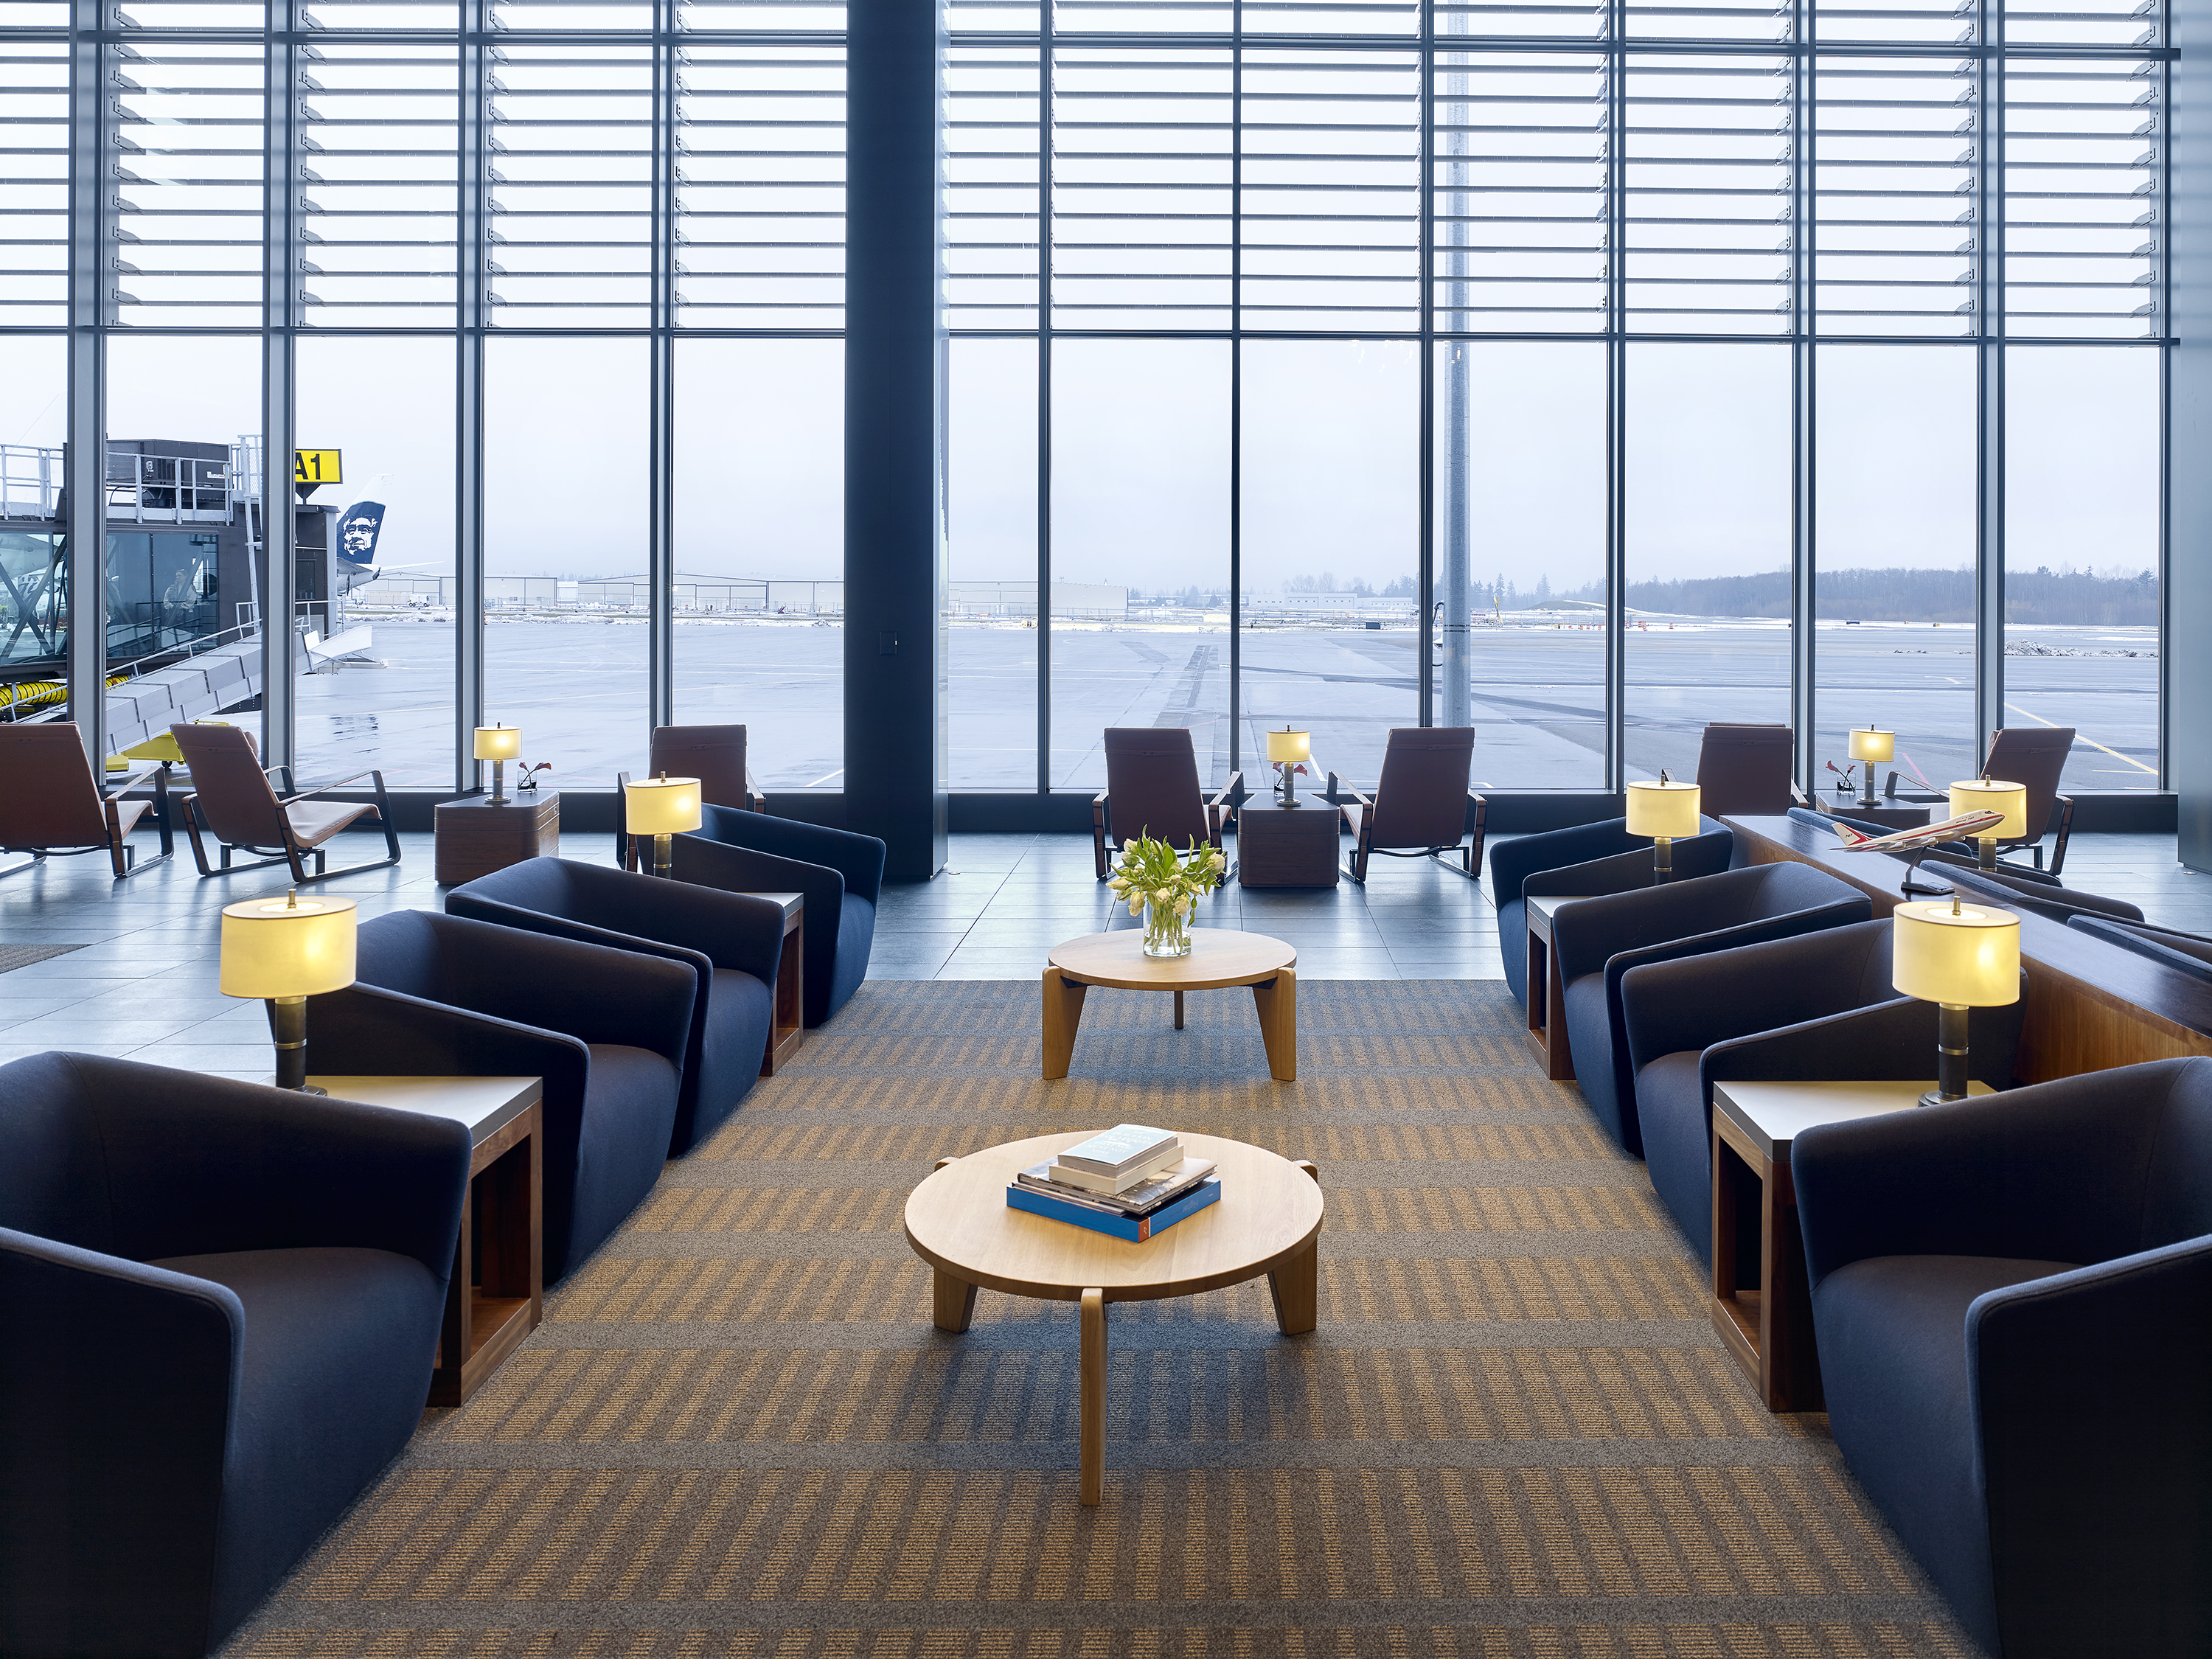 The interior of Paine Field Airport in Seattle. There are chairs, tables, and tall floor to ceiling windows overlooking a runway.